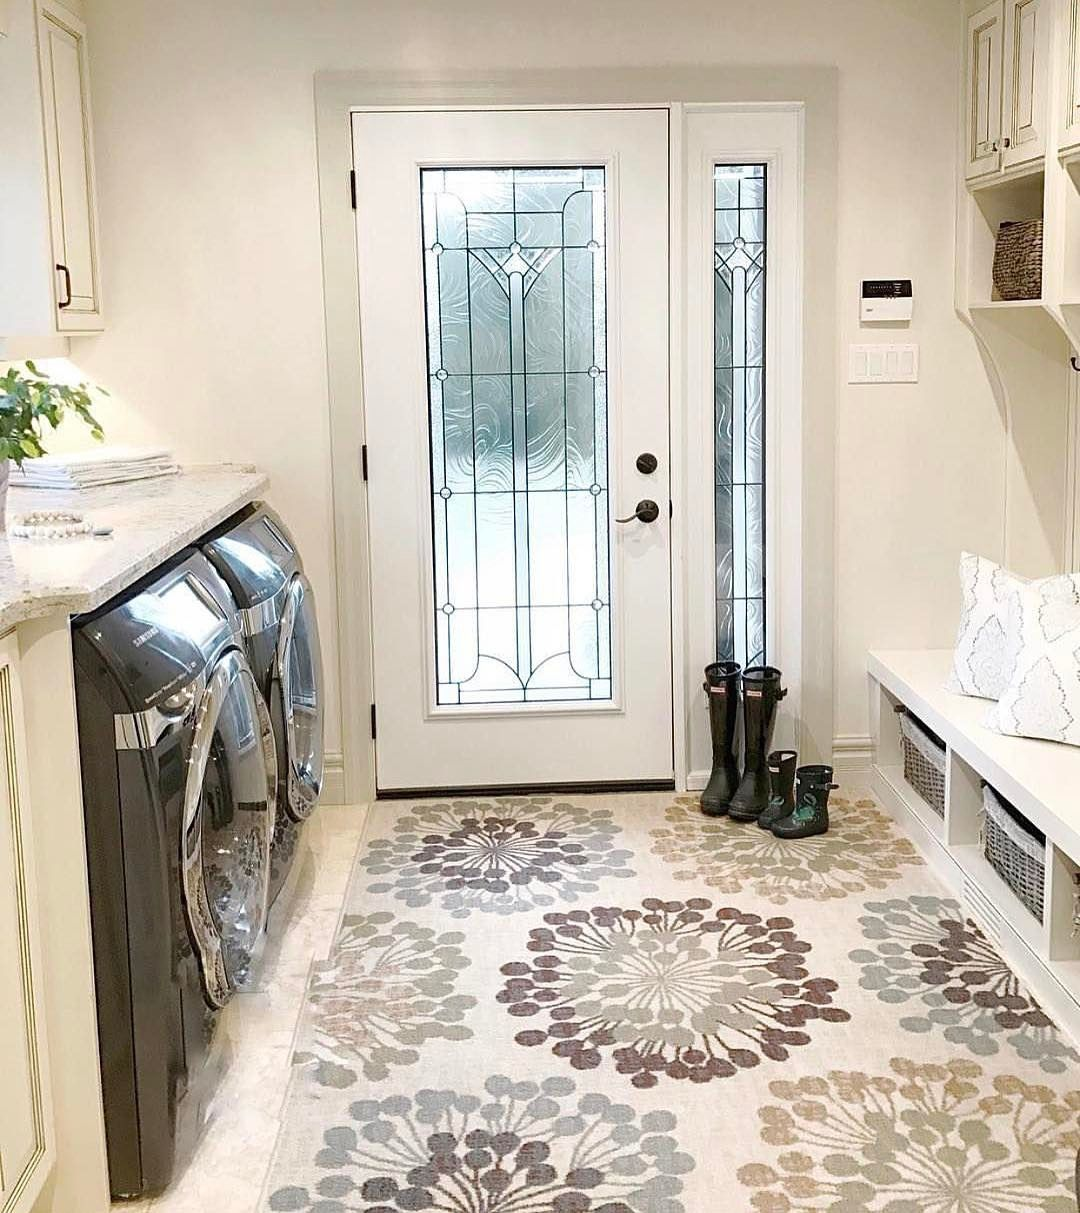 1 498 Likes 11 Comments Interior Design Amp Home Decor Inspire Me Home Decor On In Mudroom Laundry Room White Laundry Rooms Mud Room Laundry Room Combo